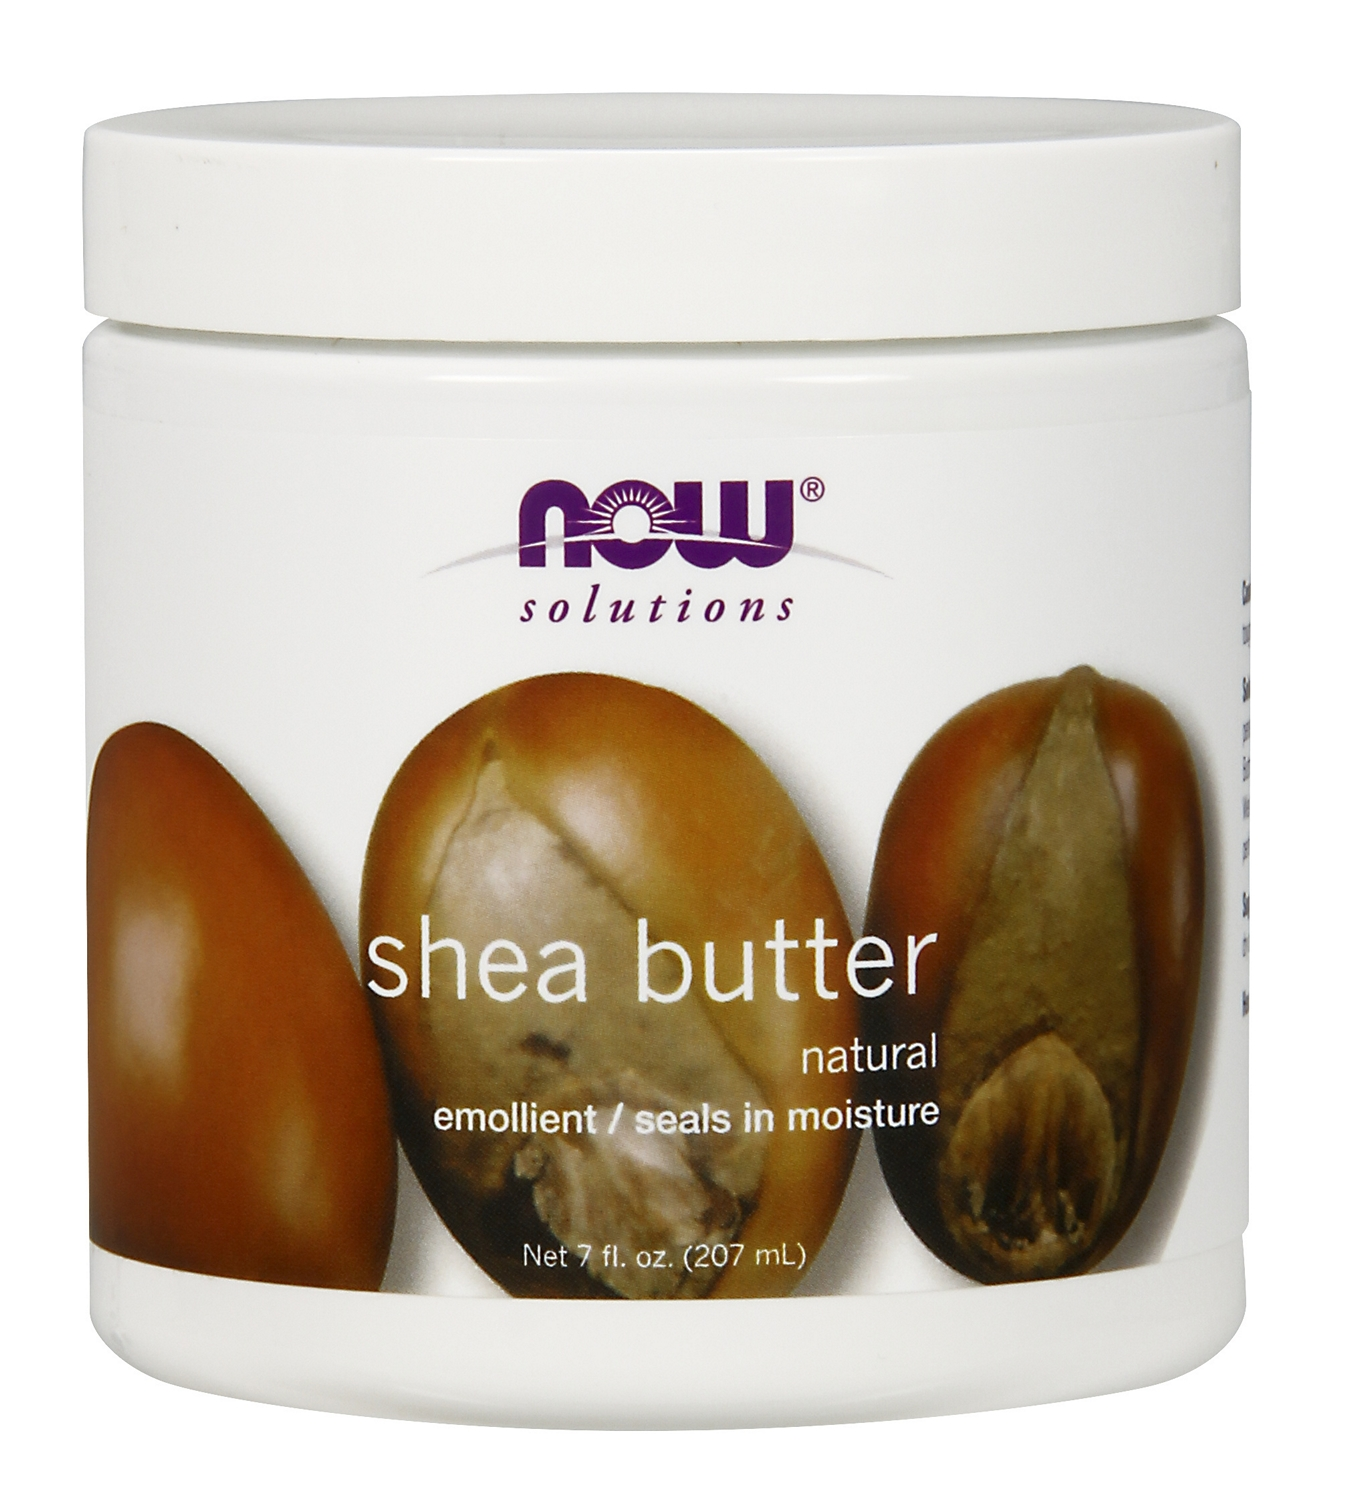 Shea Butter 7 fl oz (207 ml) by NOW